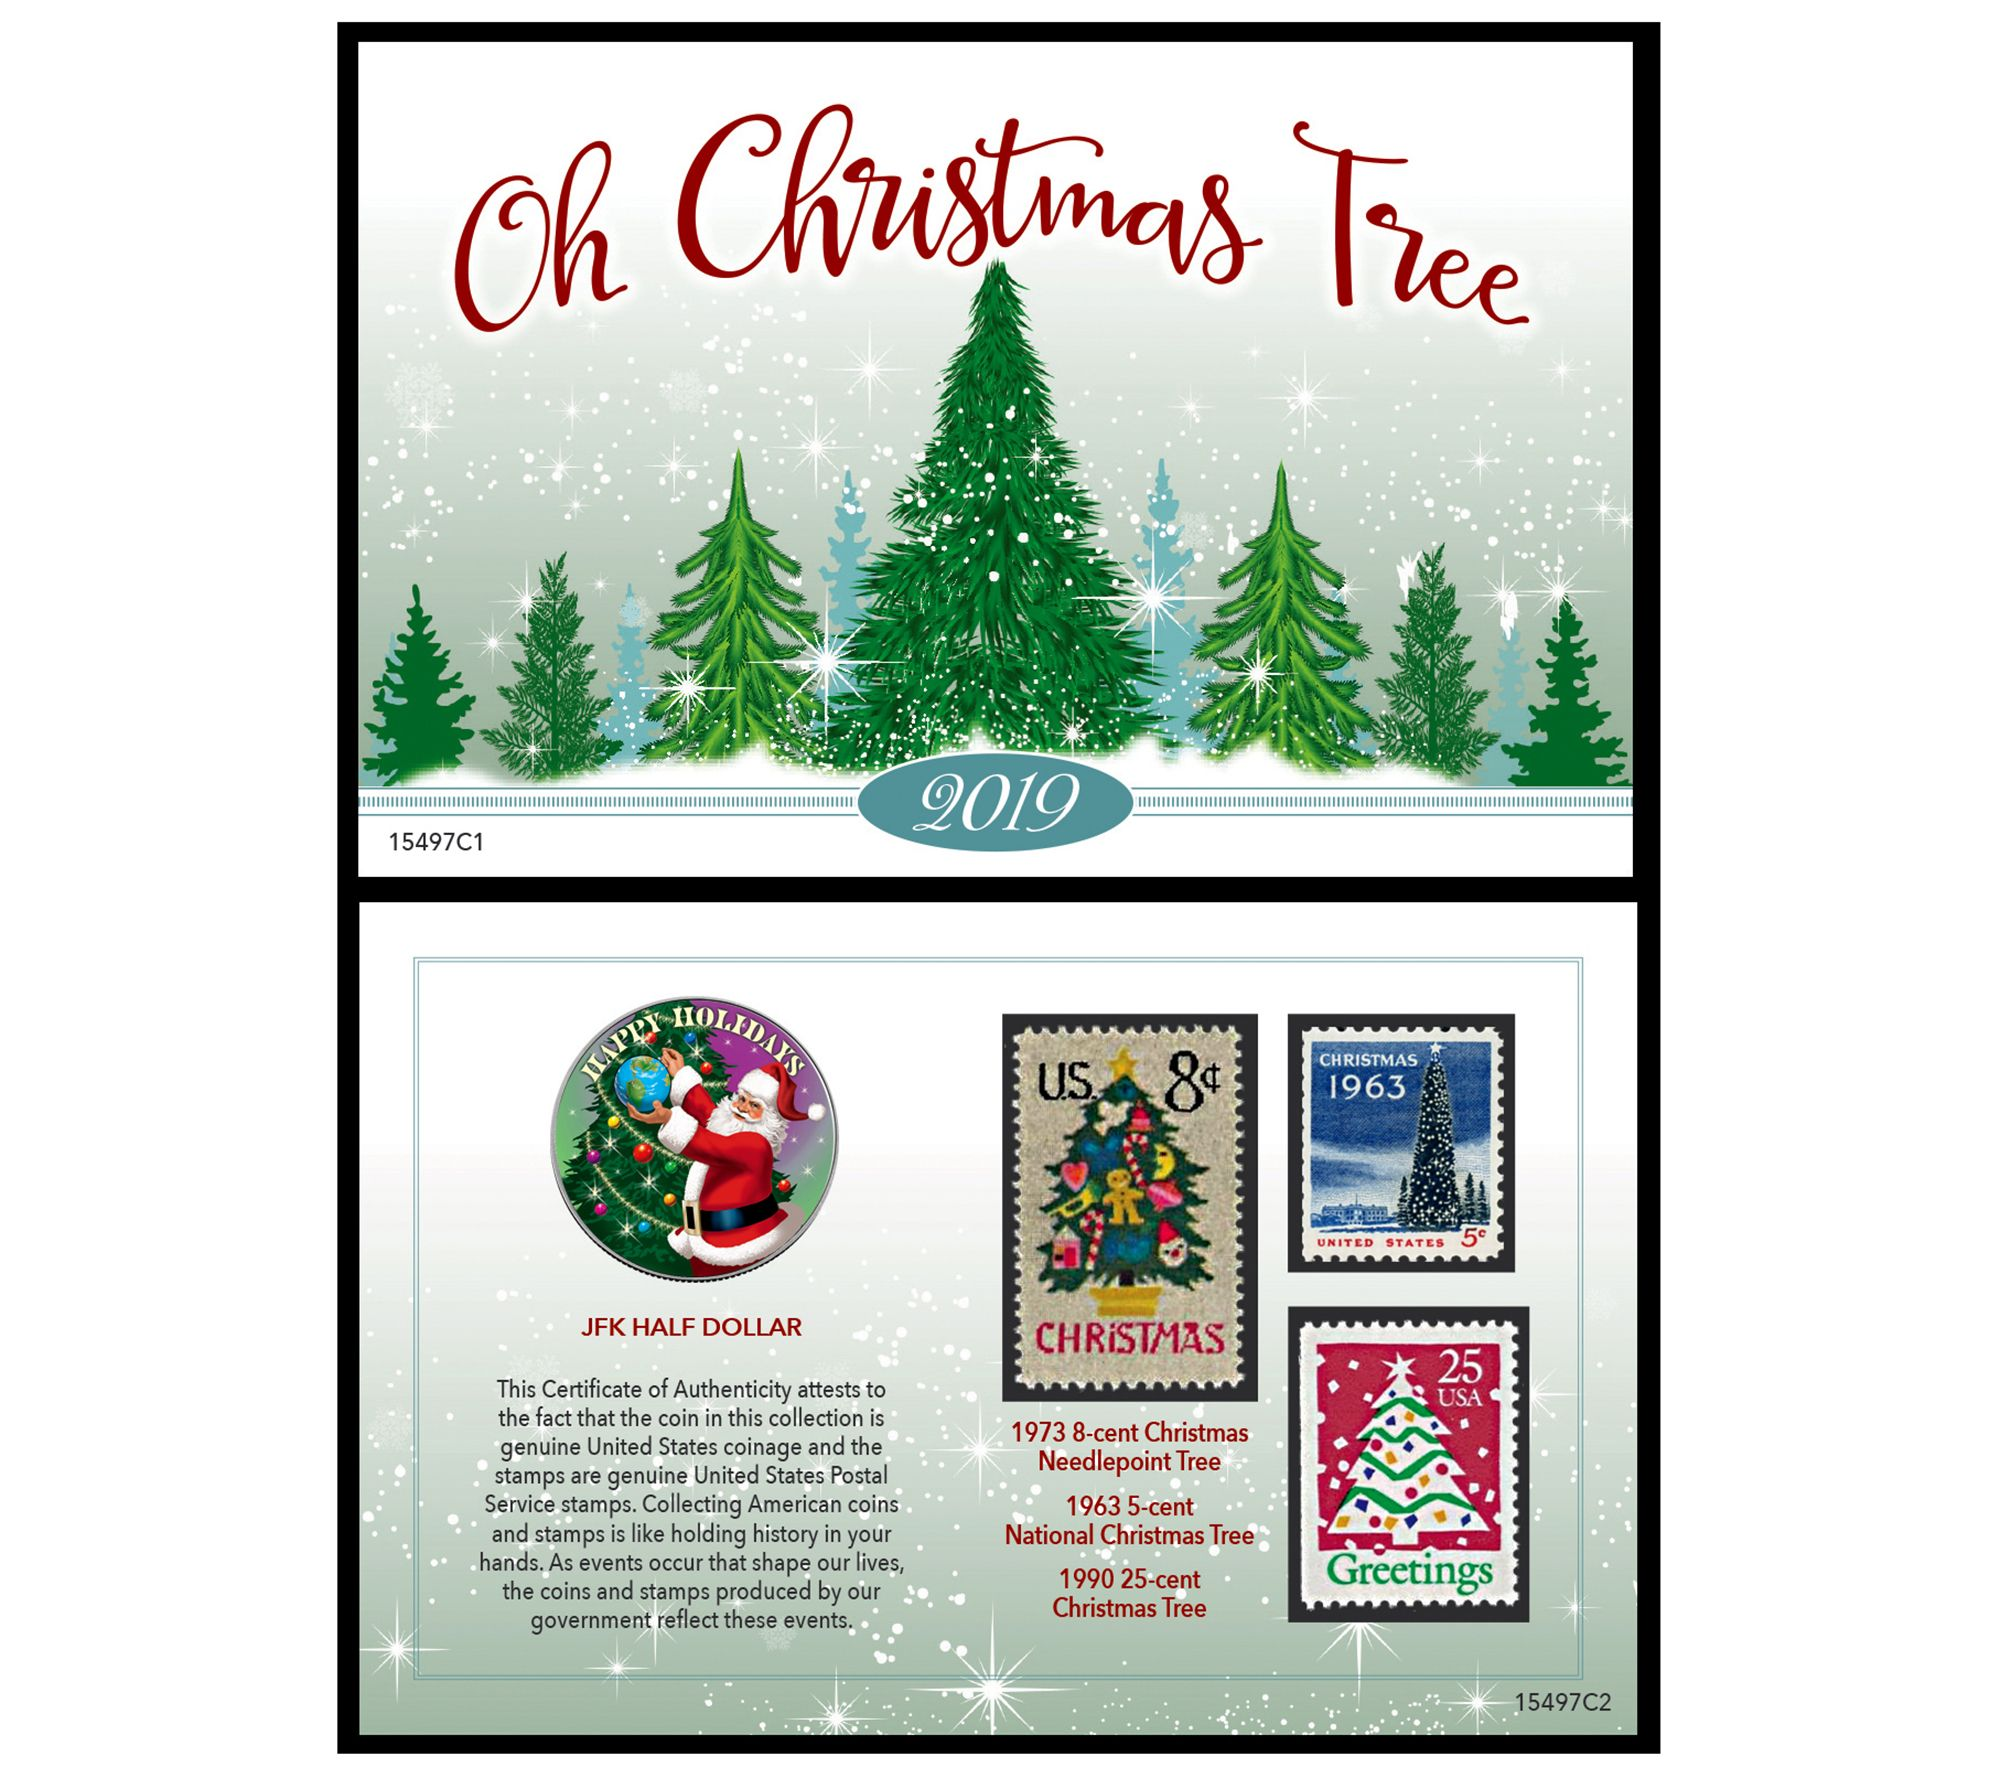 National Christmas Tree 2019.American Coin Treasures 2019 Christmas Coin Andstamp Card Qvc Com